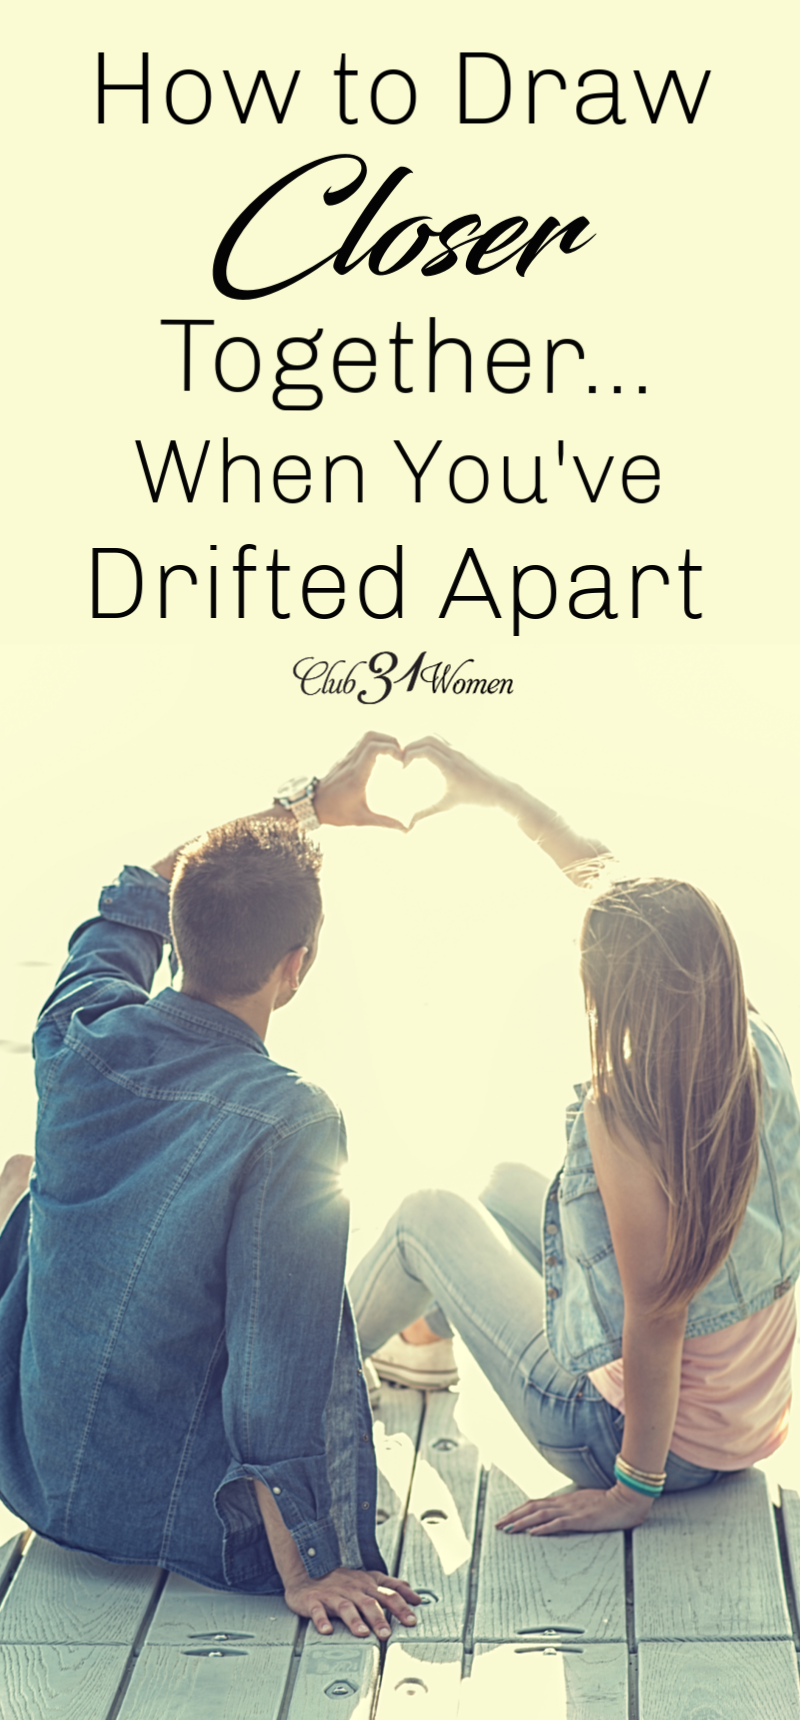 Have you drifted apart in your marriage? Wish the two of you were closer? Here are 7 inspiring ways you can draw closer in your relationship! via @Club31Women